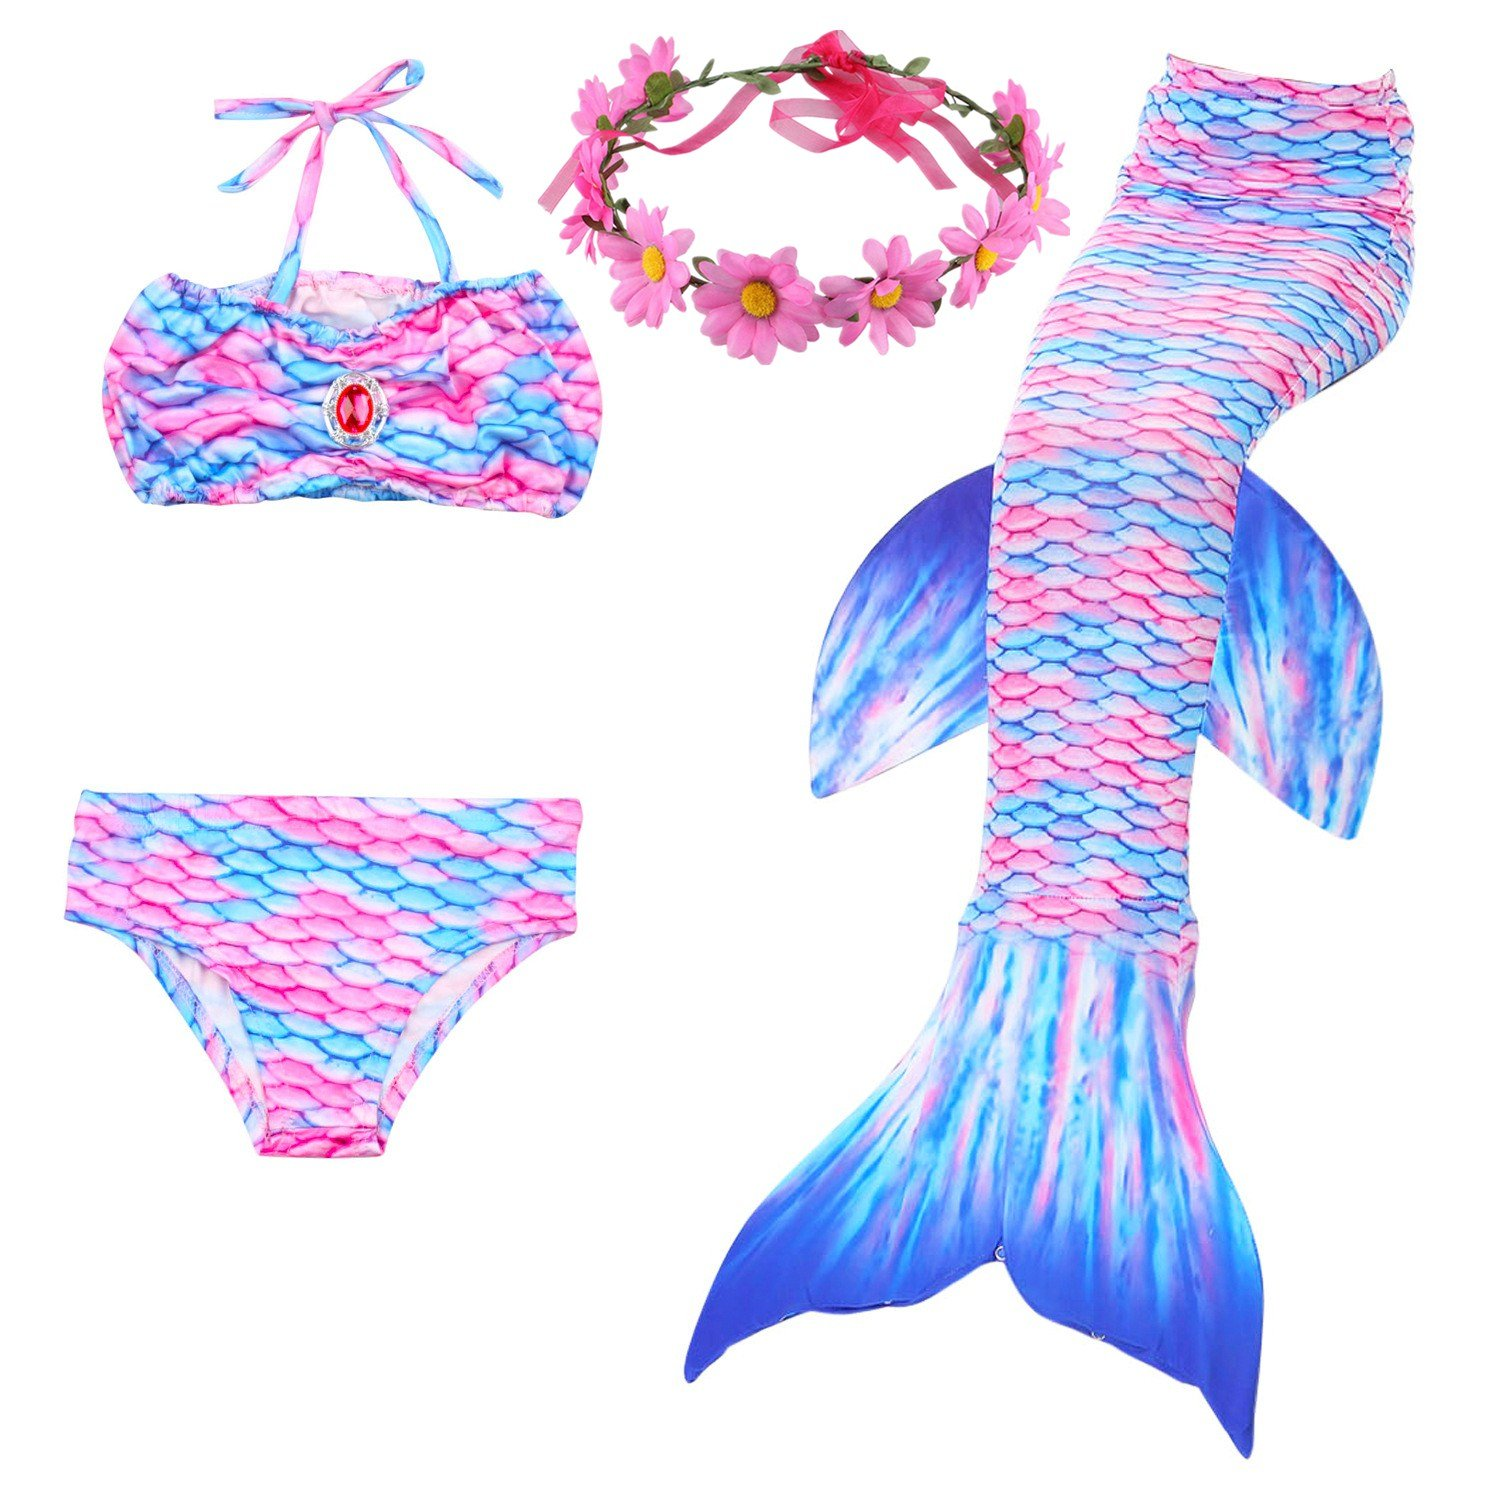 New Kid Mermaid Cos Costume Bikini Shorts Mermaid Tail Skirt 3pcs Set Beach Wear Swimsuit The Tail Can Open Can Put In A Monofin Mother & Kids